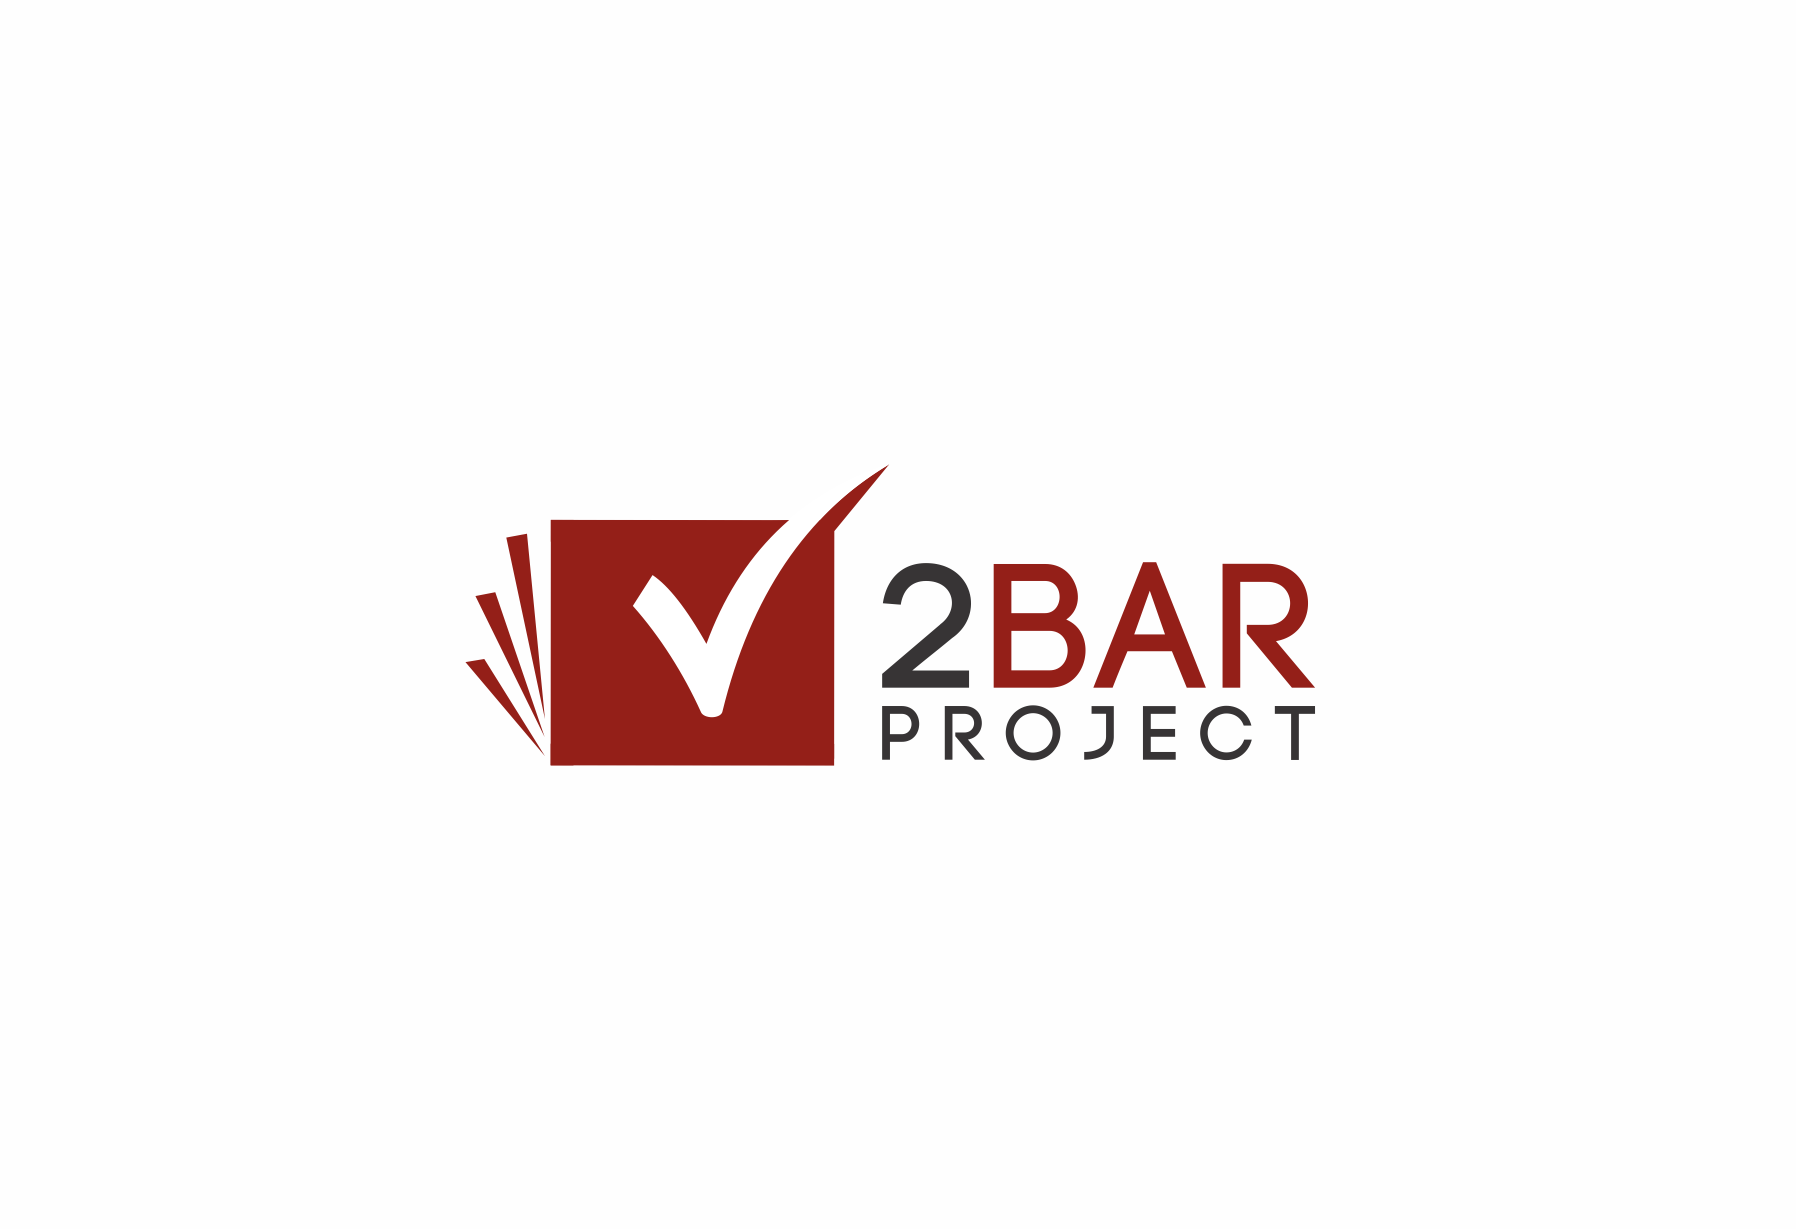 Logo Design by Chakib Alami - Entry No. 12 in the Logo Design Contest 2BAR - Imaginative Logo Design for Discovery Harbour Resources Corp..